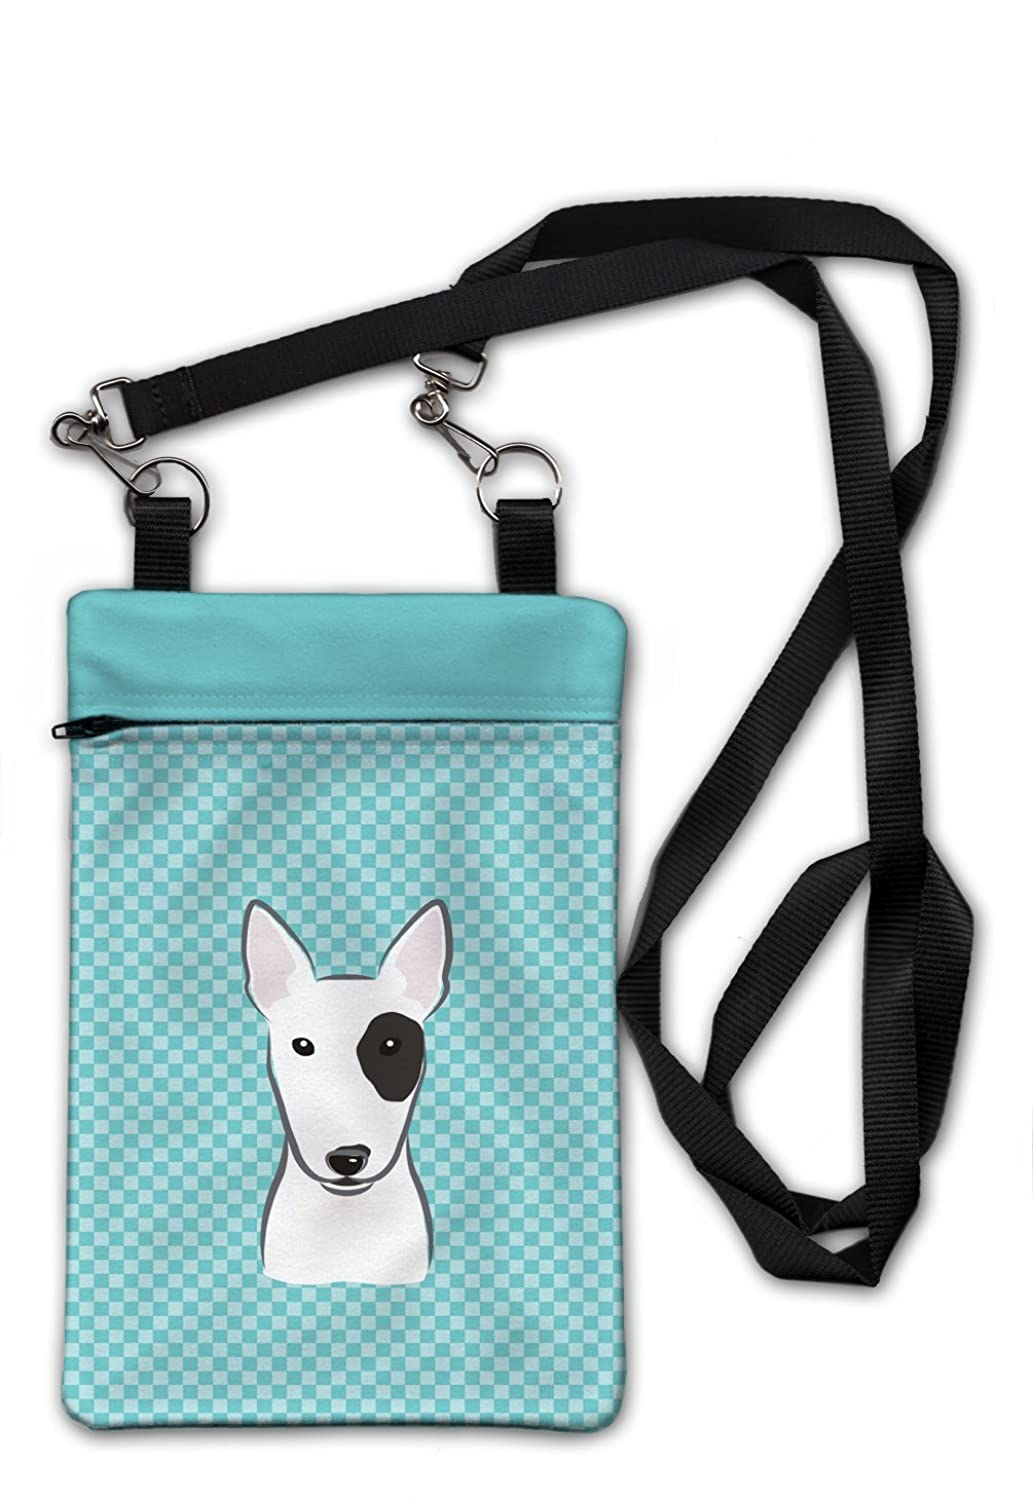 "Caroline's Treasures BB1147OBDY Checkerboard Blue Bull Terrier Crossbody Bag Purse , 6 1/2 x 9 1/2"", multicolor"